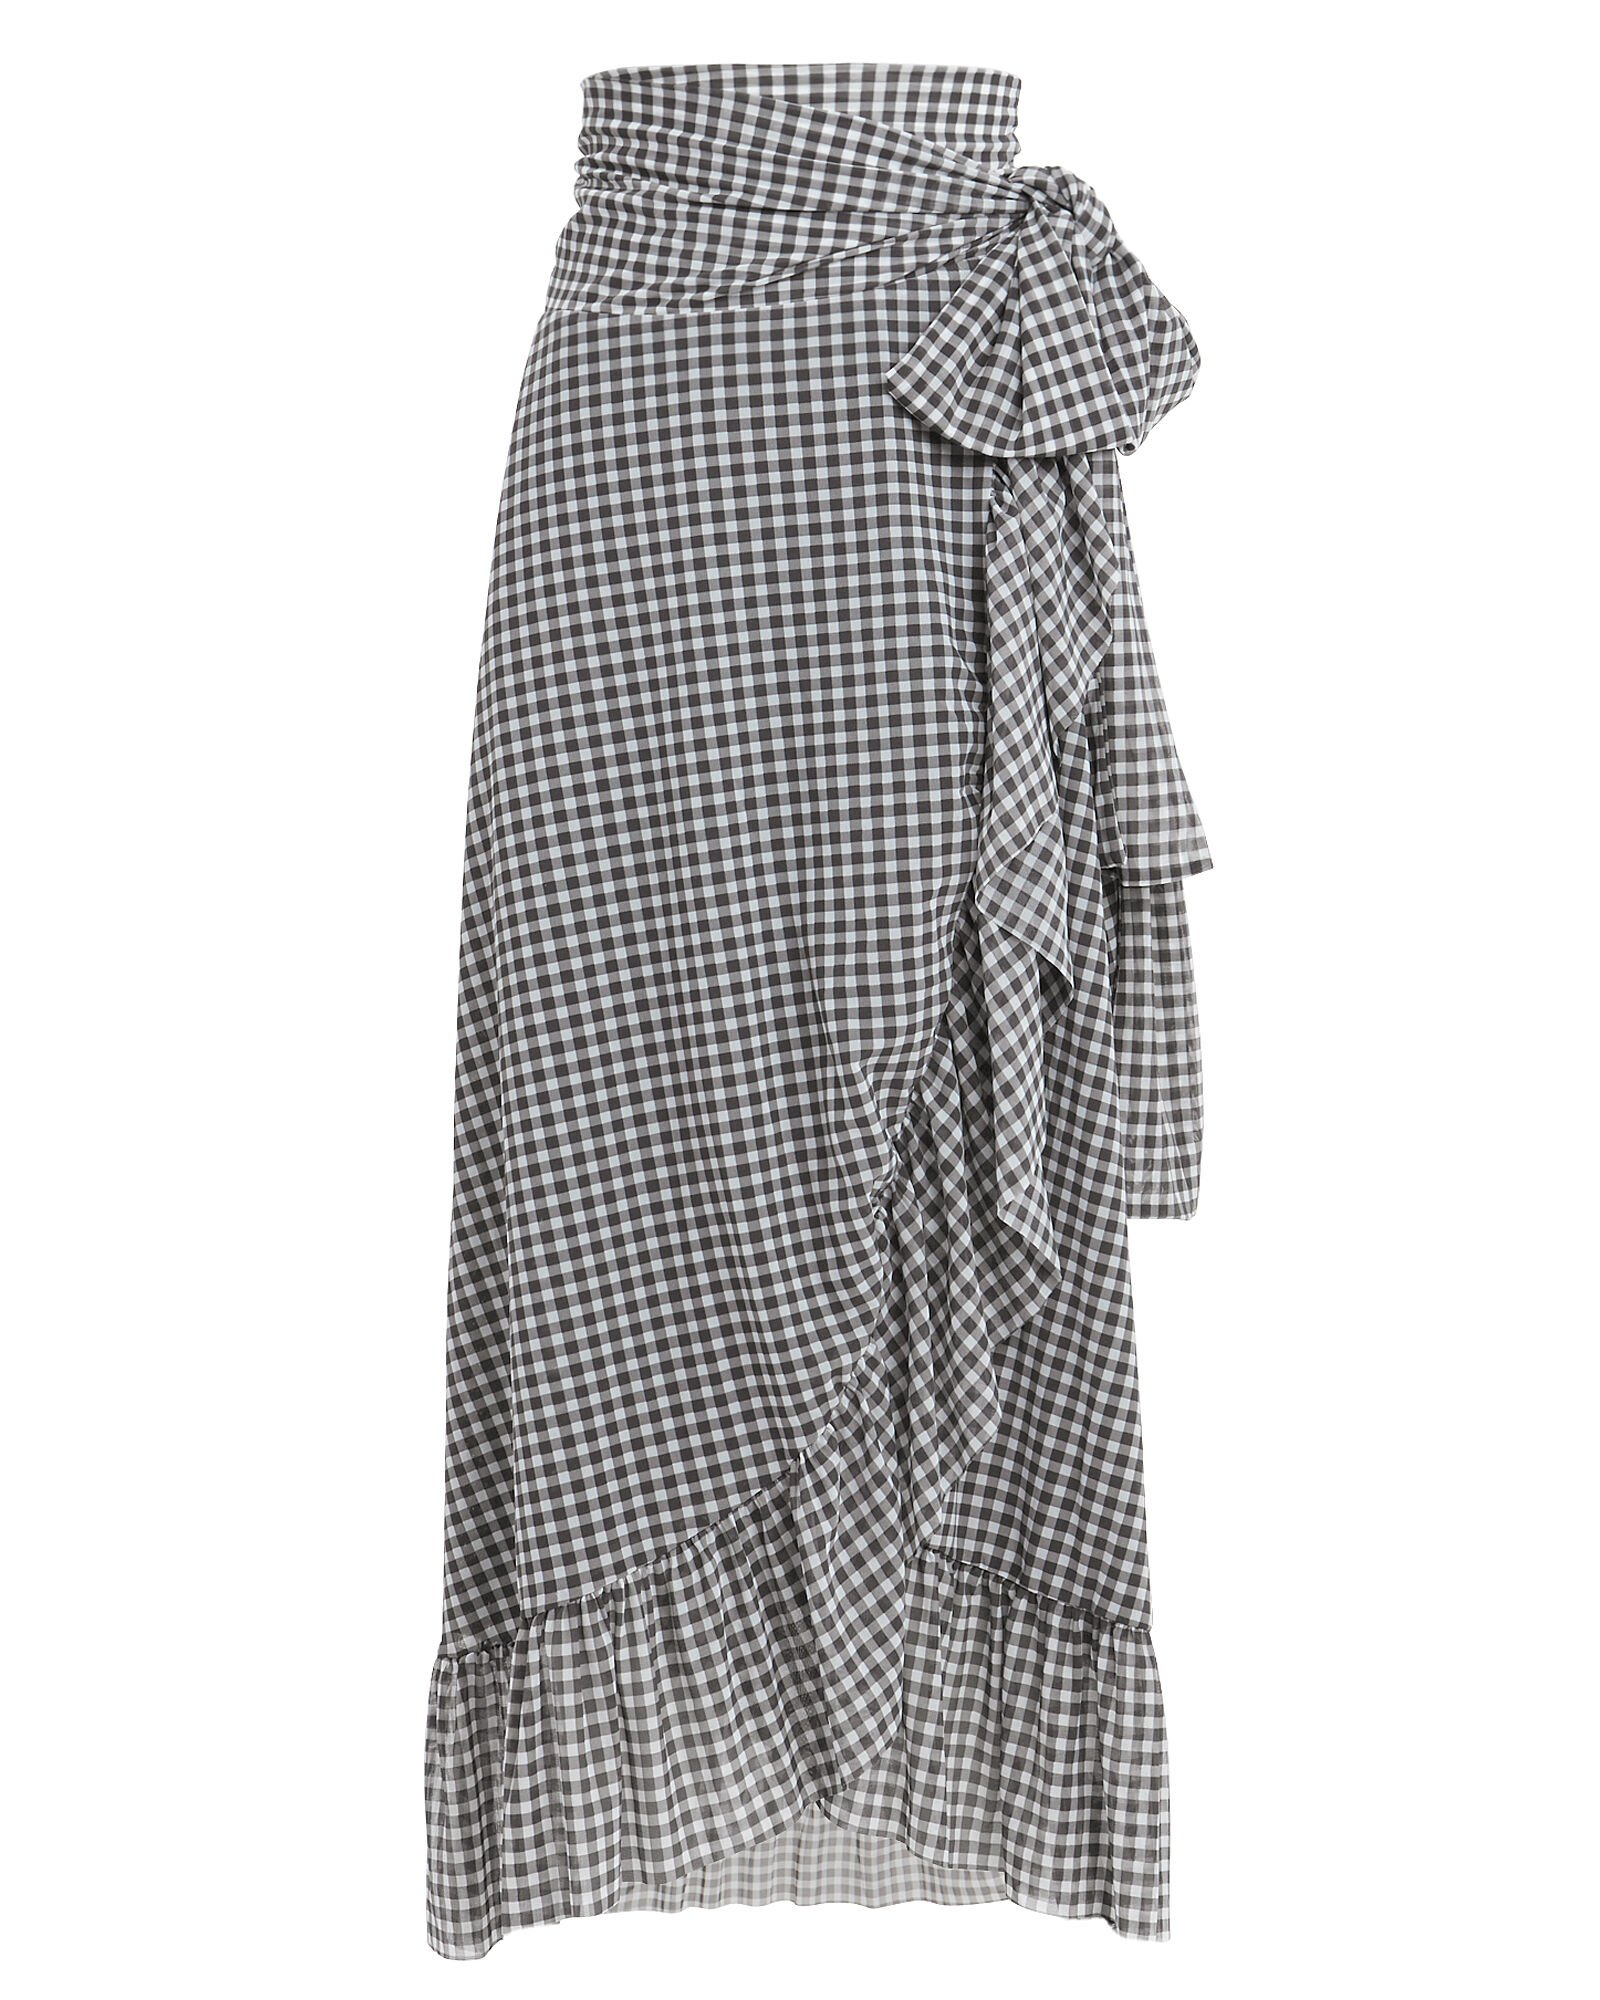 Gingham Wrap Midi Skirt, BLK/WHT, hi-res